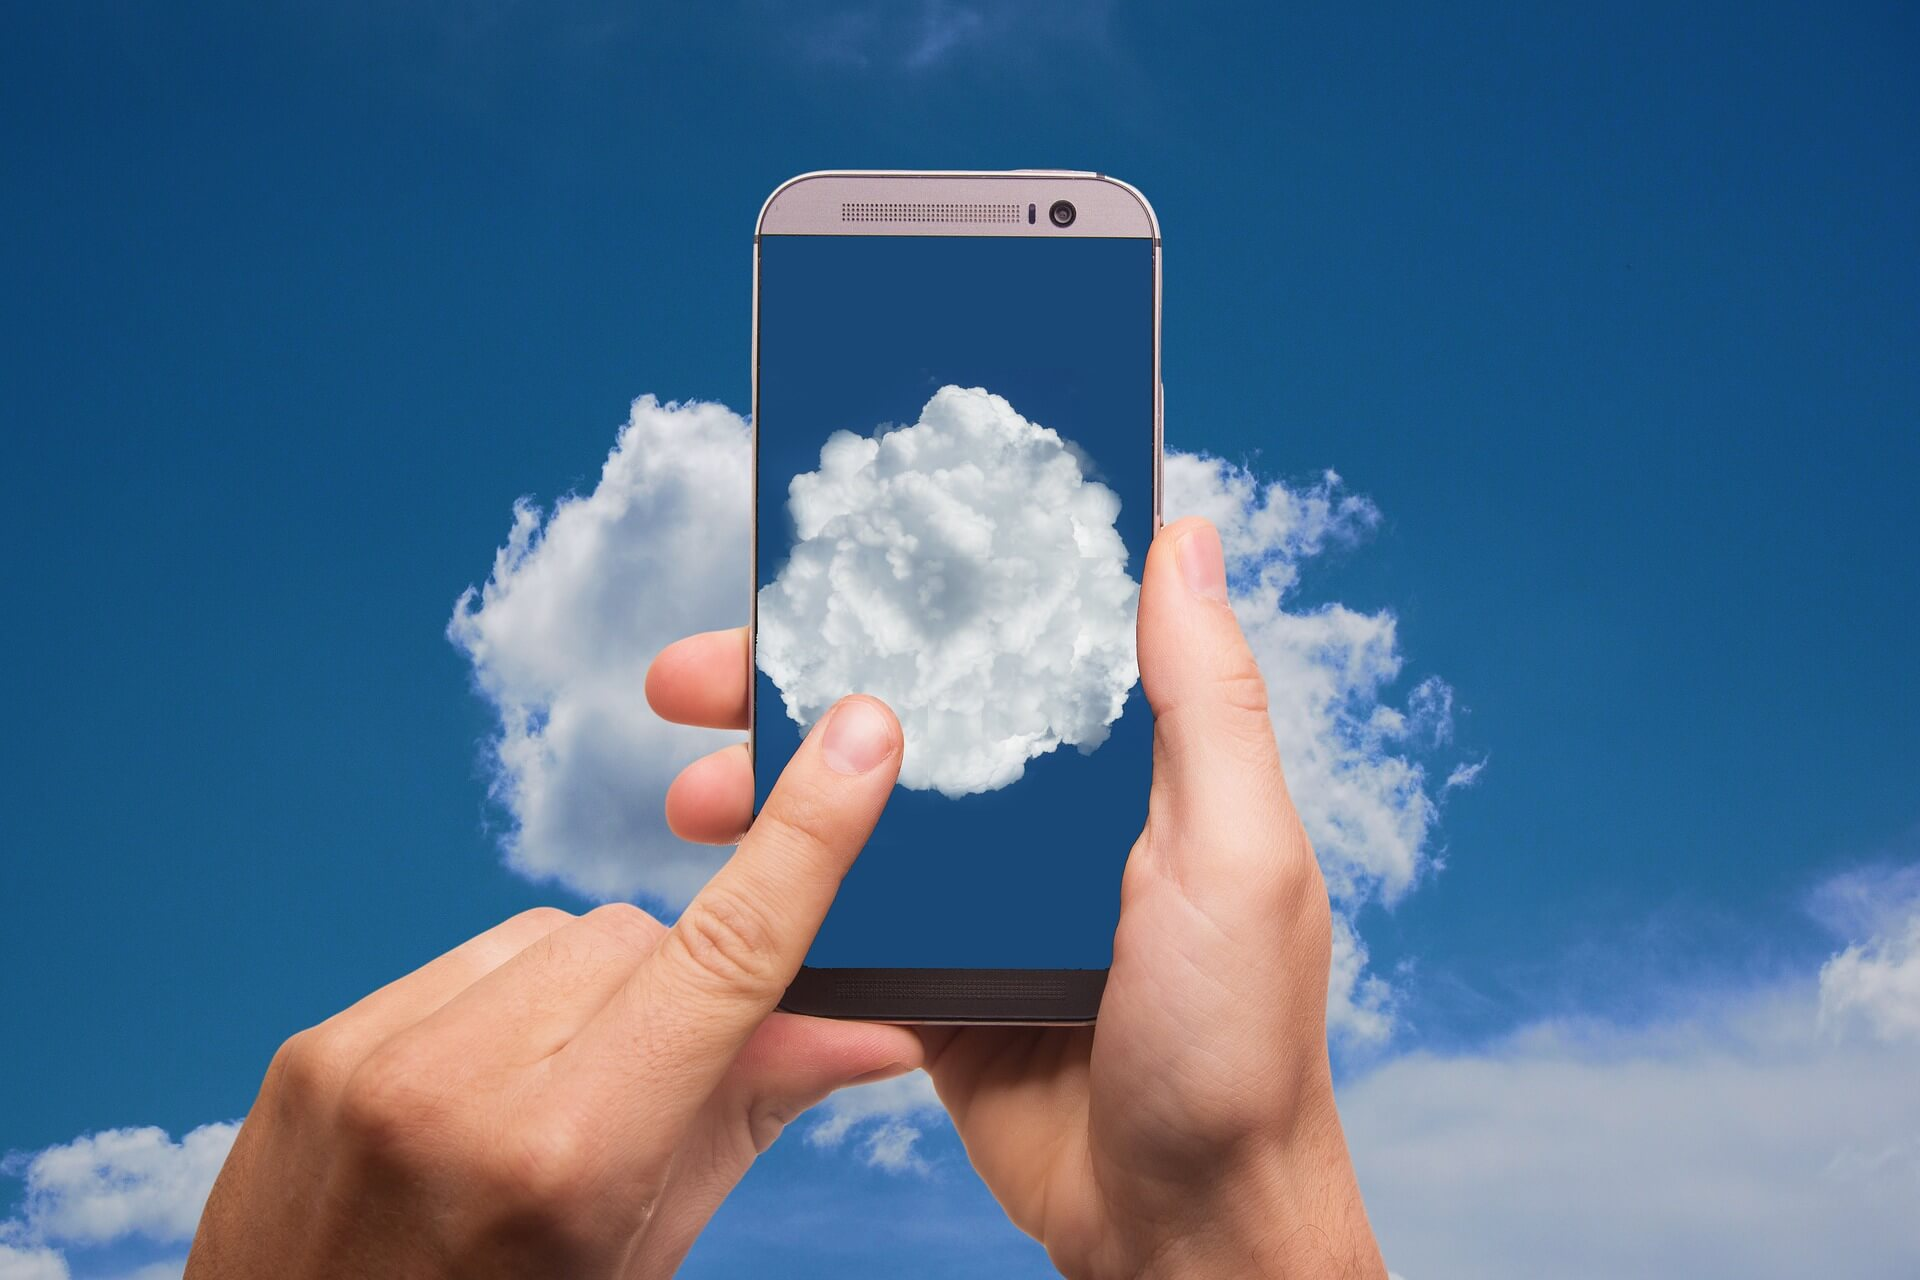 White clouds on blue sky, with a smartphone being held, showing the same thing